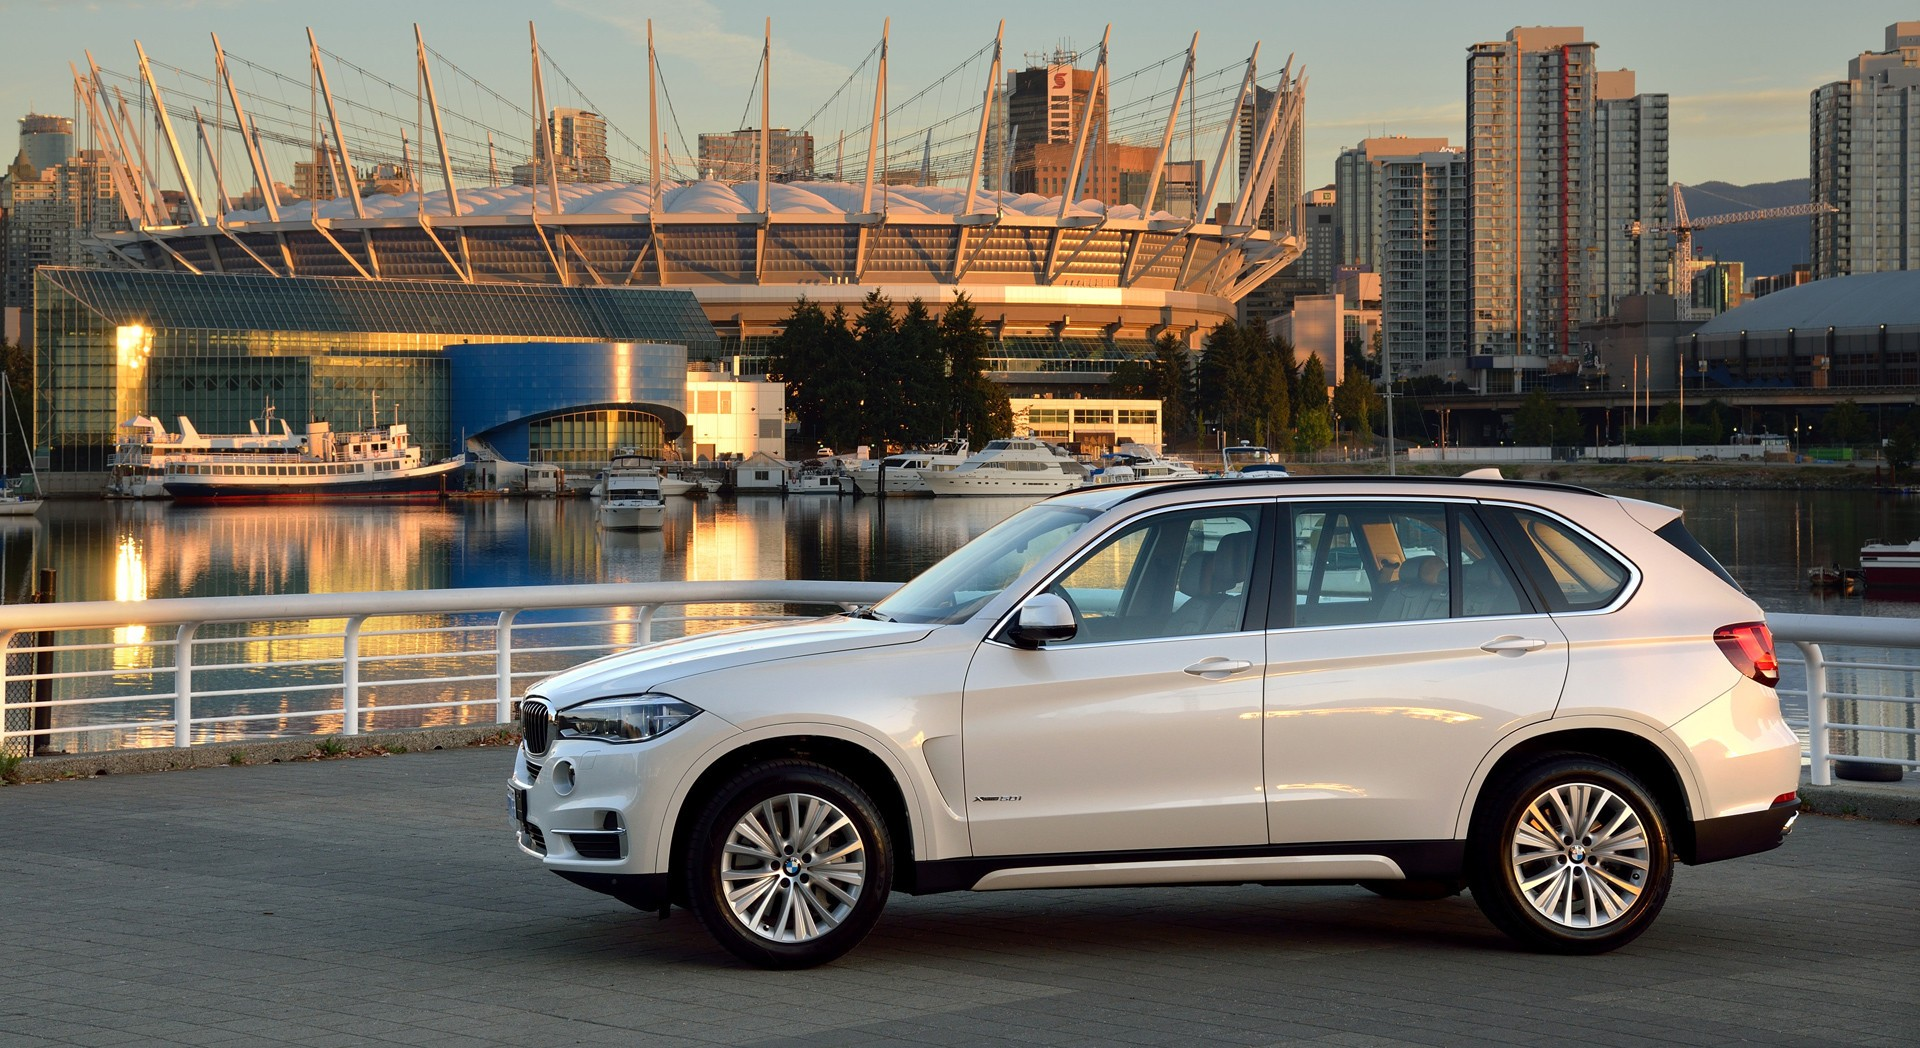 bmw x5 white city